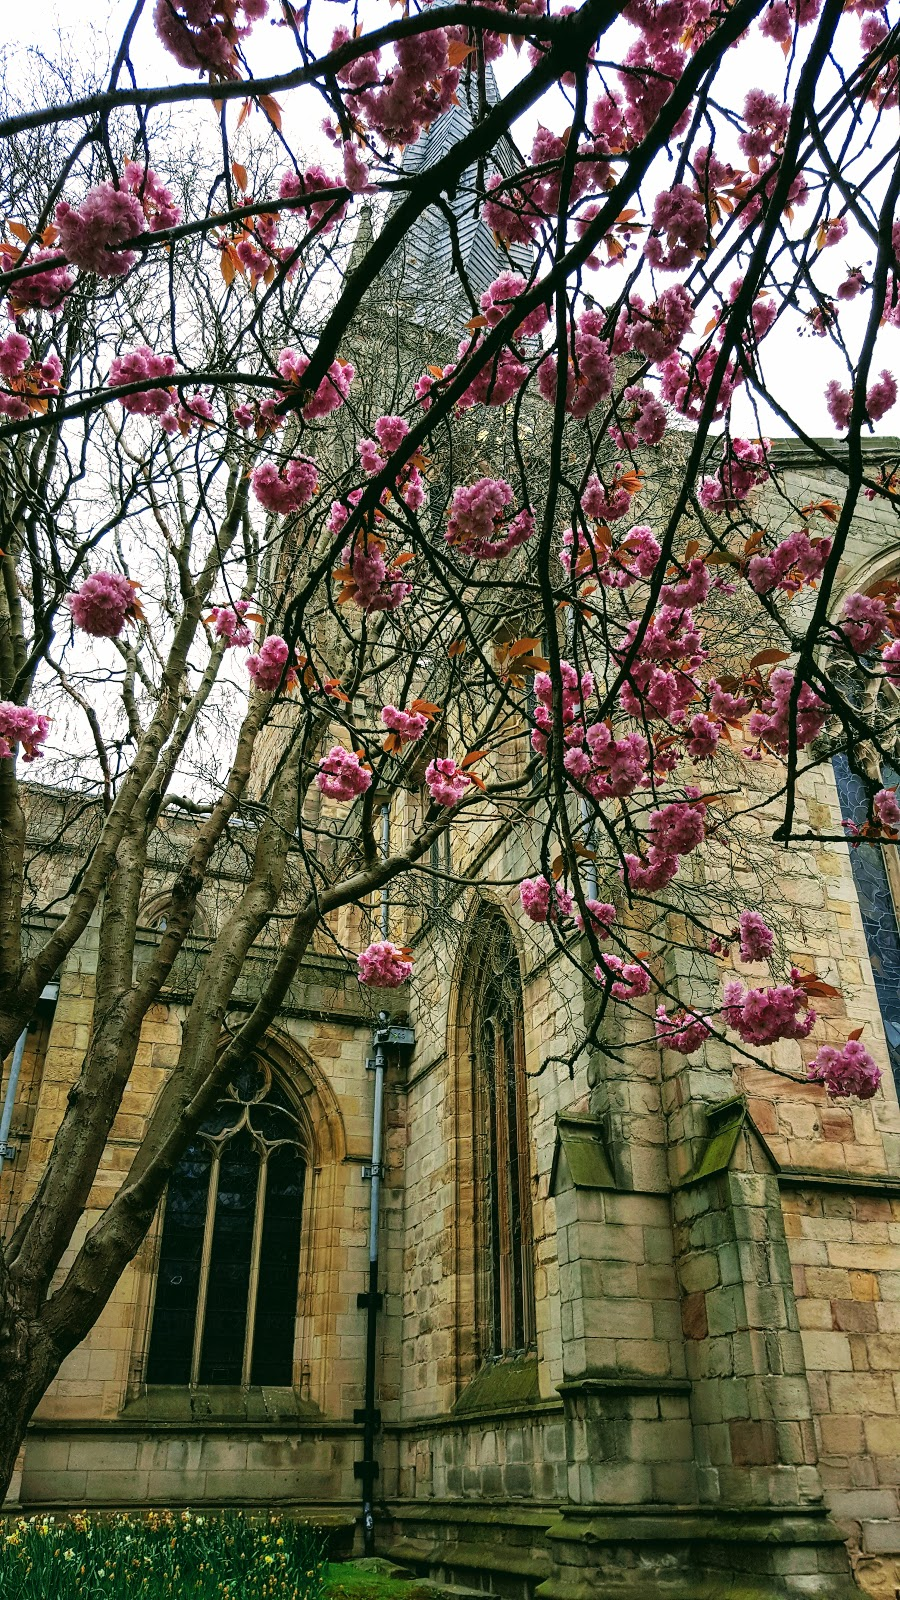 Chesterfield Crooked Spire Spring Bloom: Wednesday Blog Hop